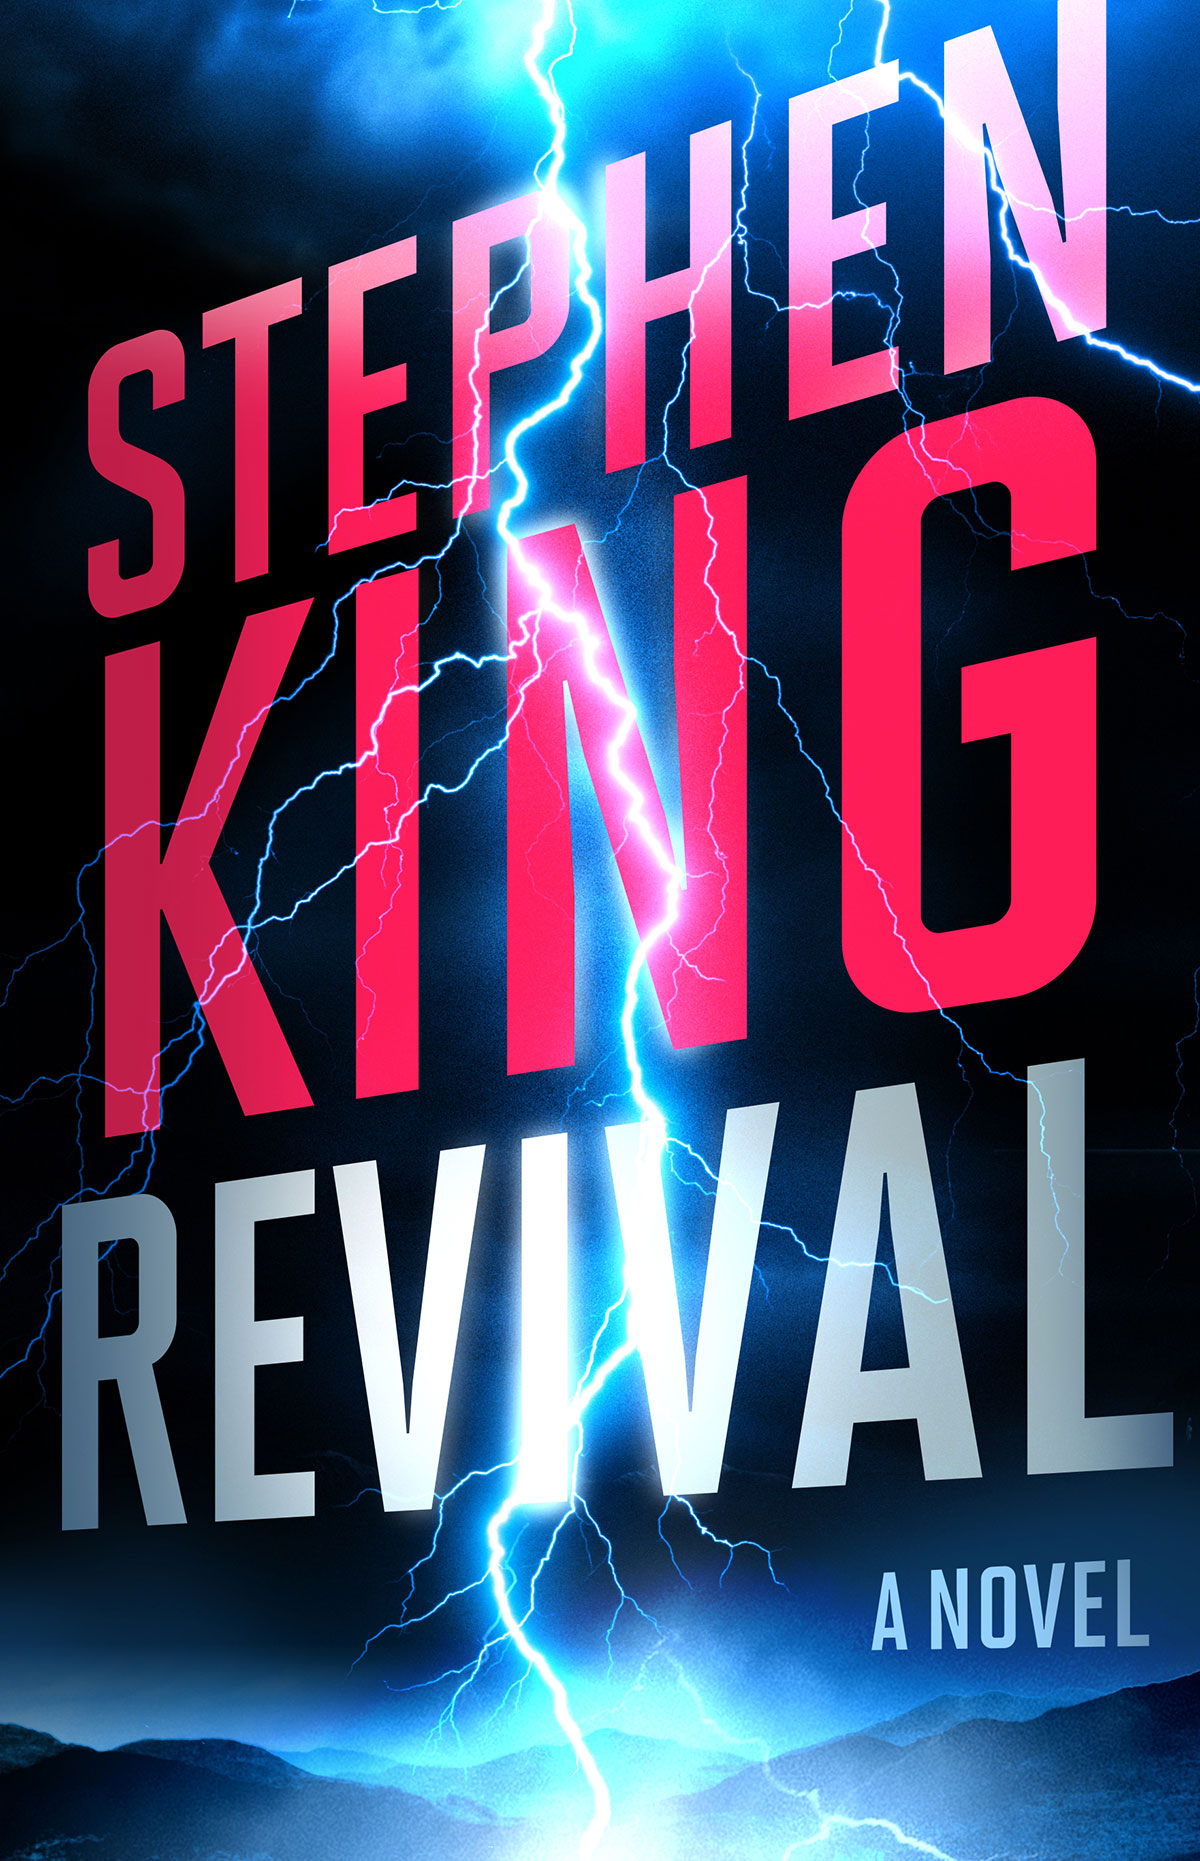 """Revival"" is Stephen King's latest novel. (Scribner)"